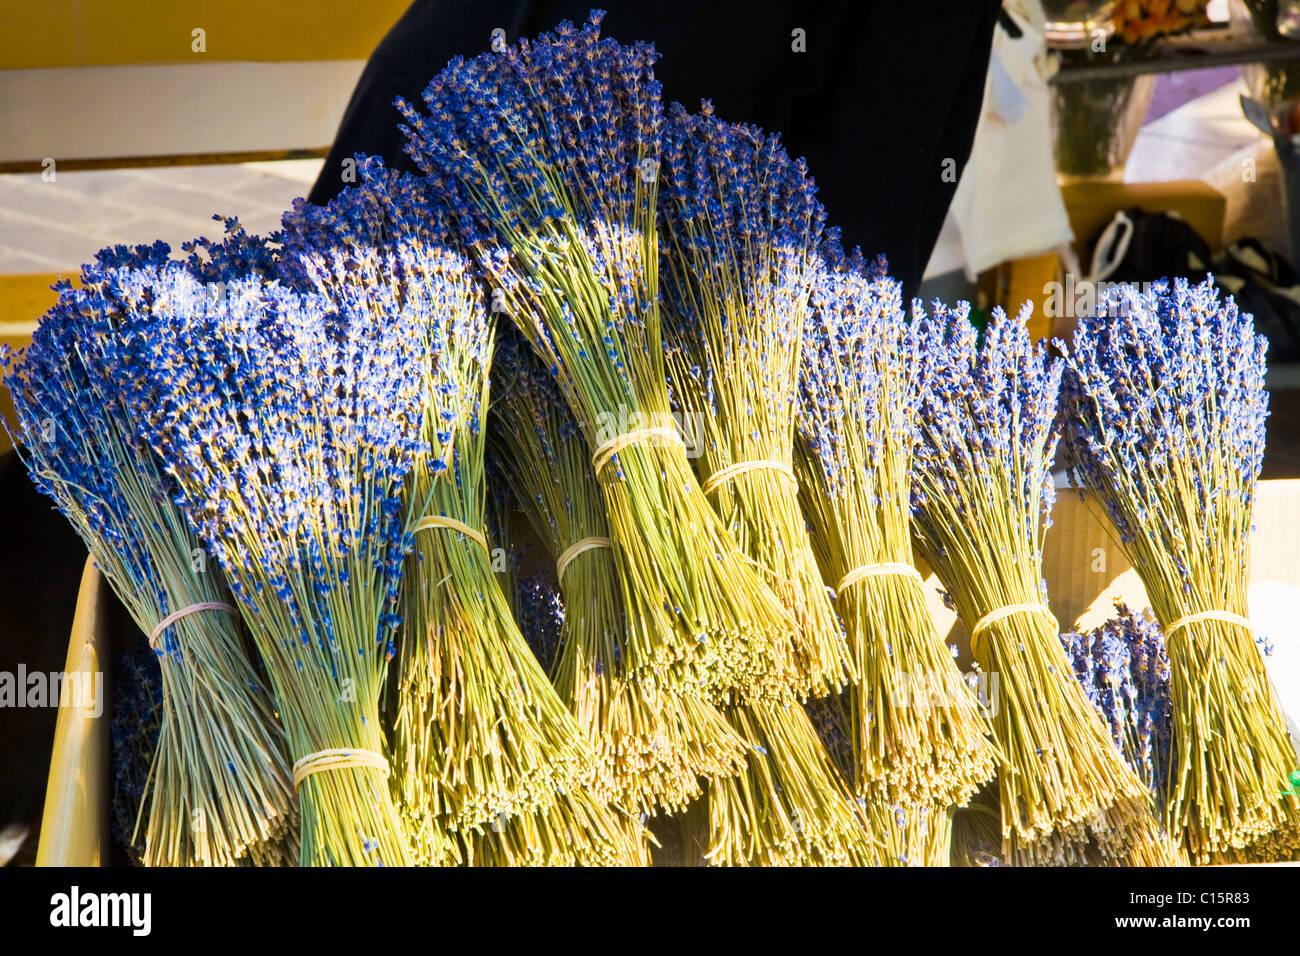 Lavender for sale, Nice, Cote d'Azur, France - Stock Image